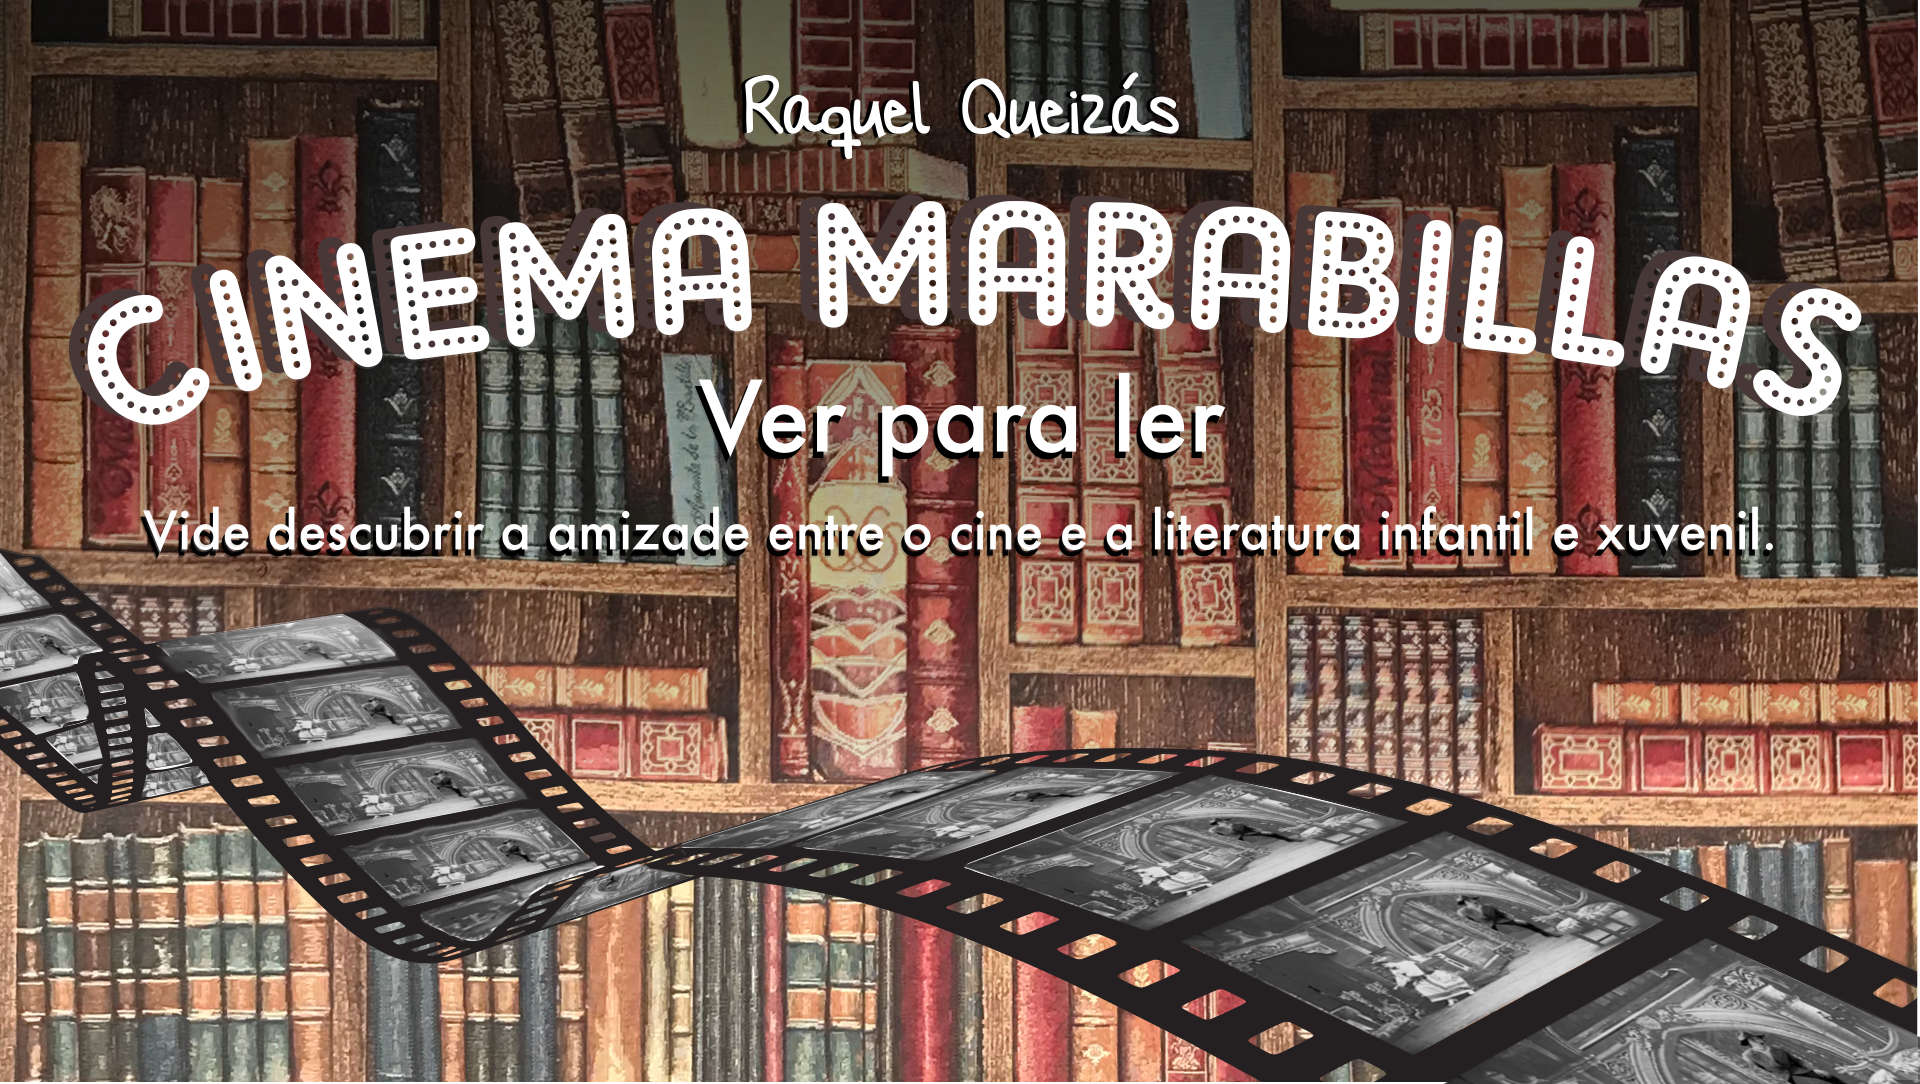 https://www.raquelqueizas.com/wp-content/uploads/CINEMA-MARABILLAS-SLIDER.jpg